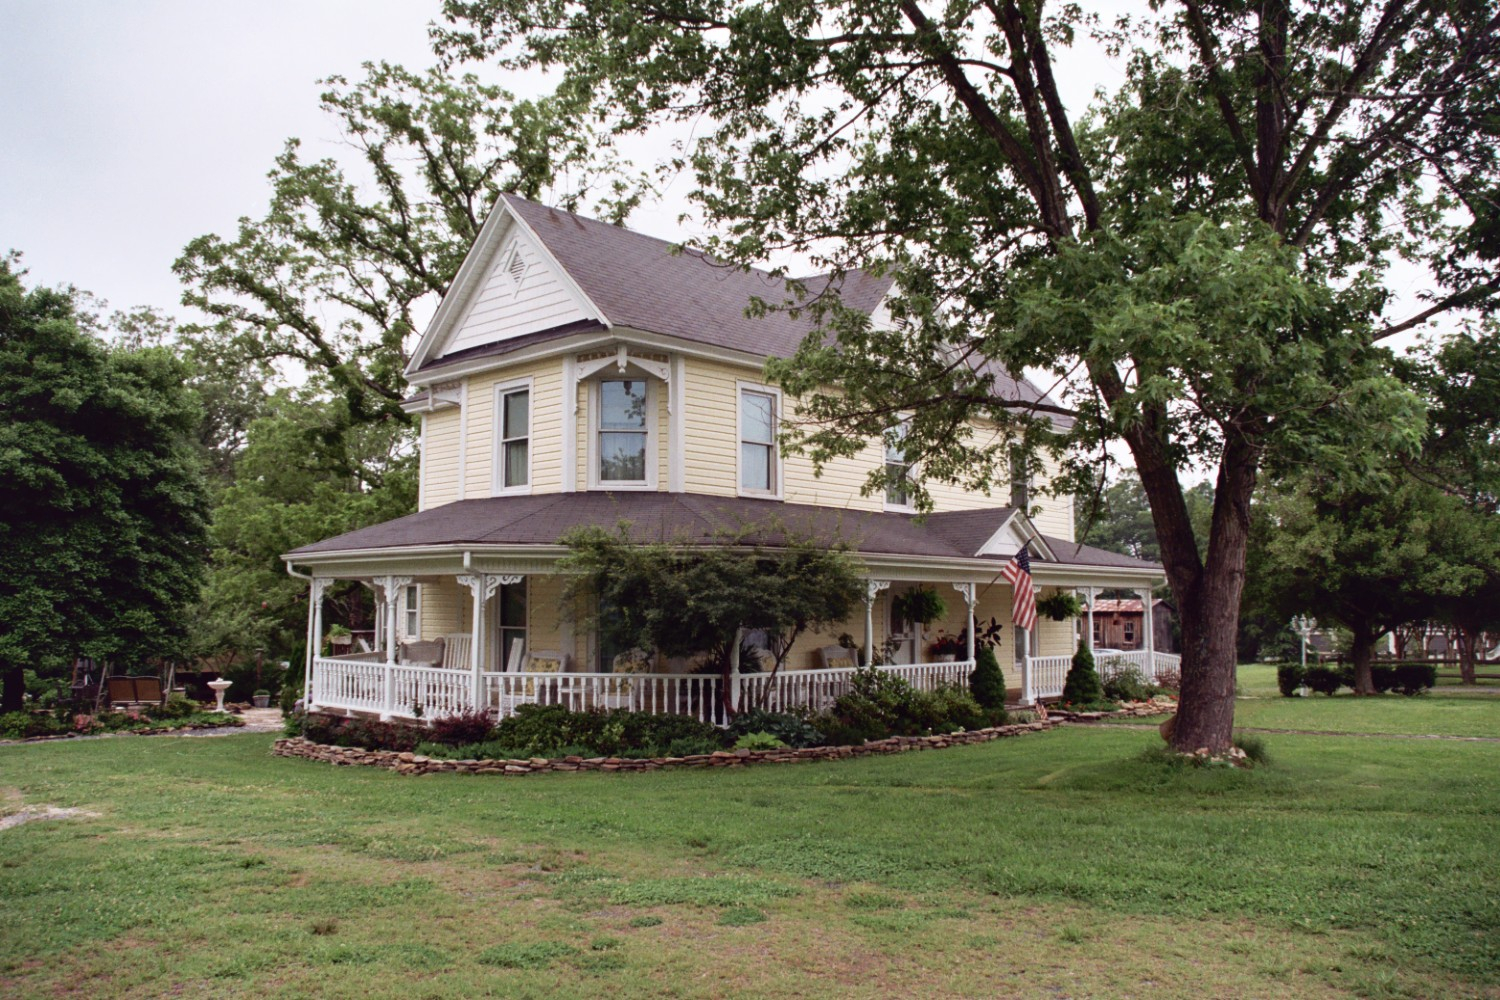 The Duck Smith House Bed & Breakfast